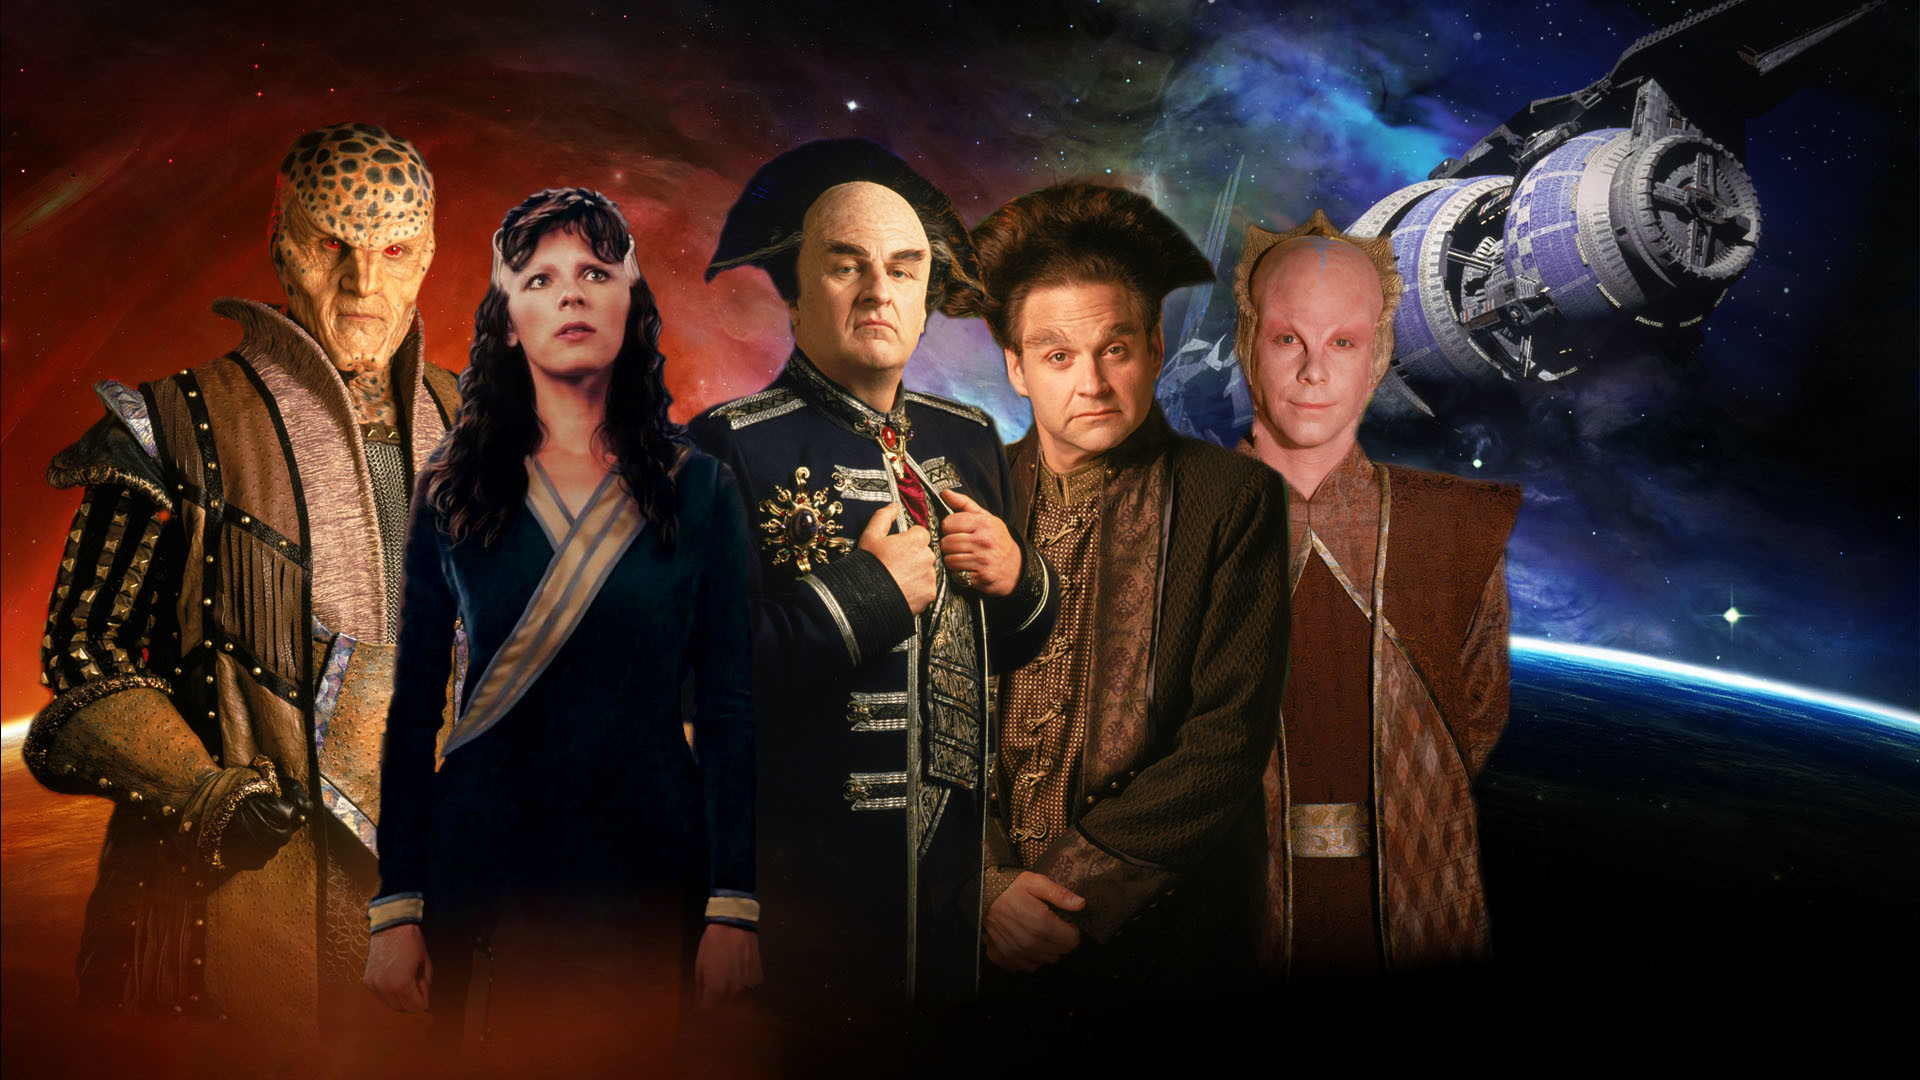 1920x1080 Babylon 5 images Babylon 5 Cast HD wallpaper and background photos .